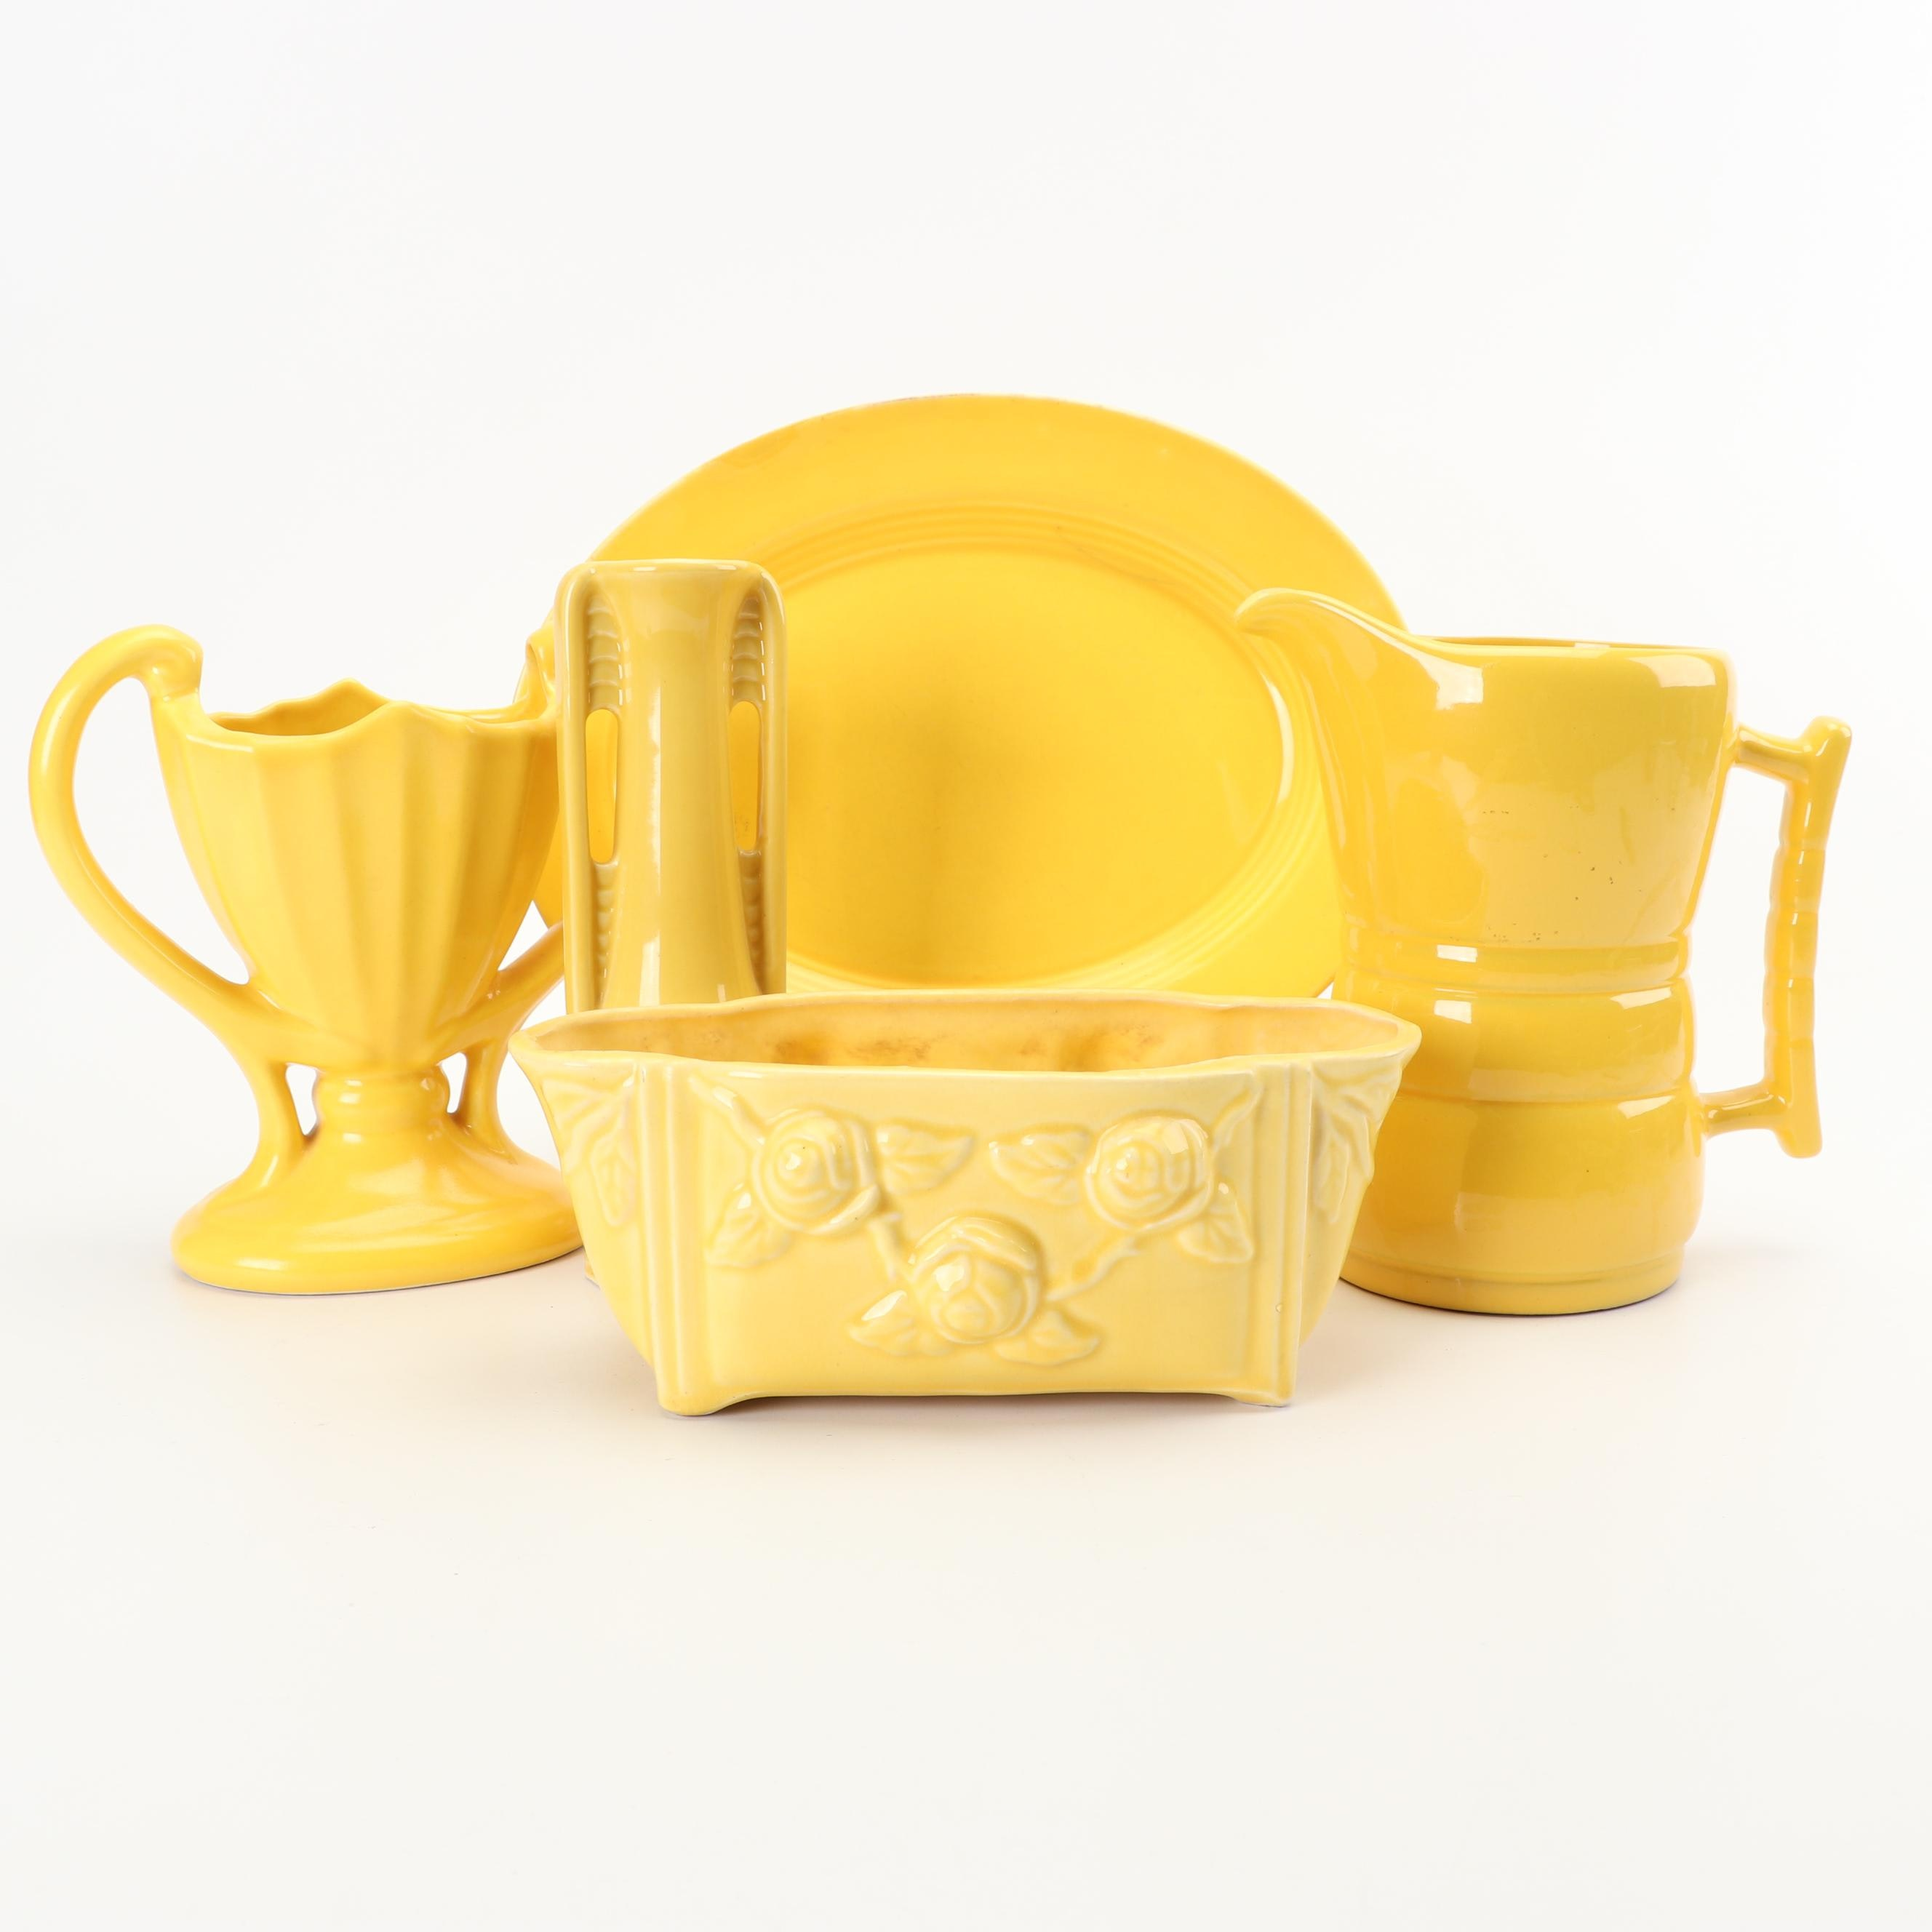 Frankoma, Shawnee, Camark and Other Yellow Ceramic Pottery